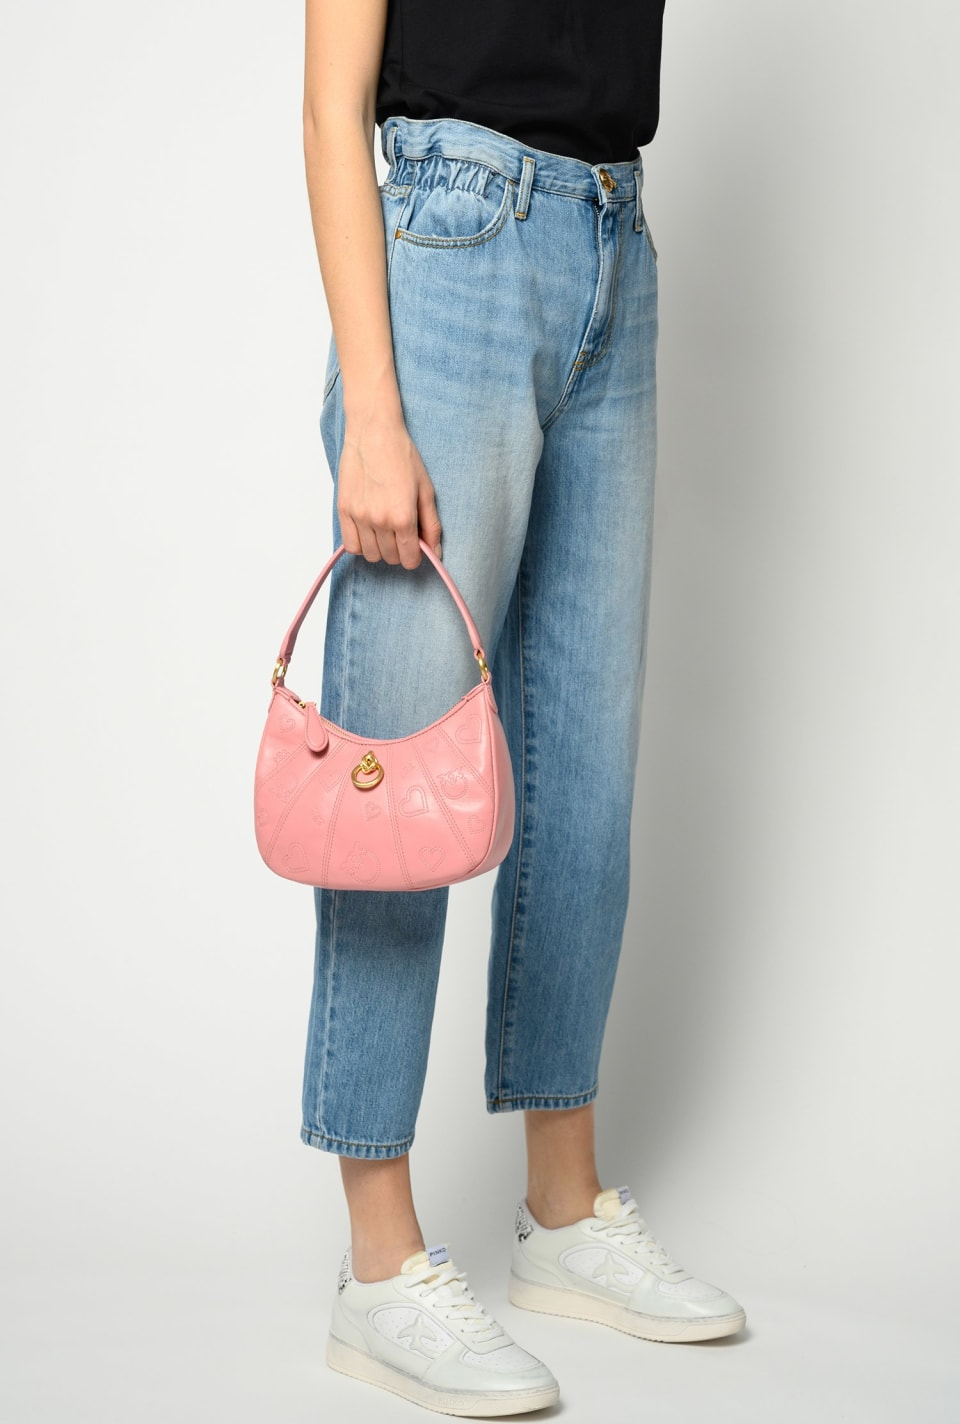 Mini Lovelink Bag Half Moon PINKO Love - Pinko